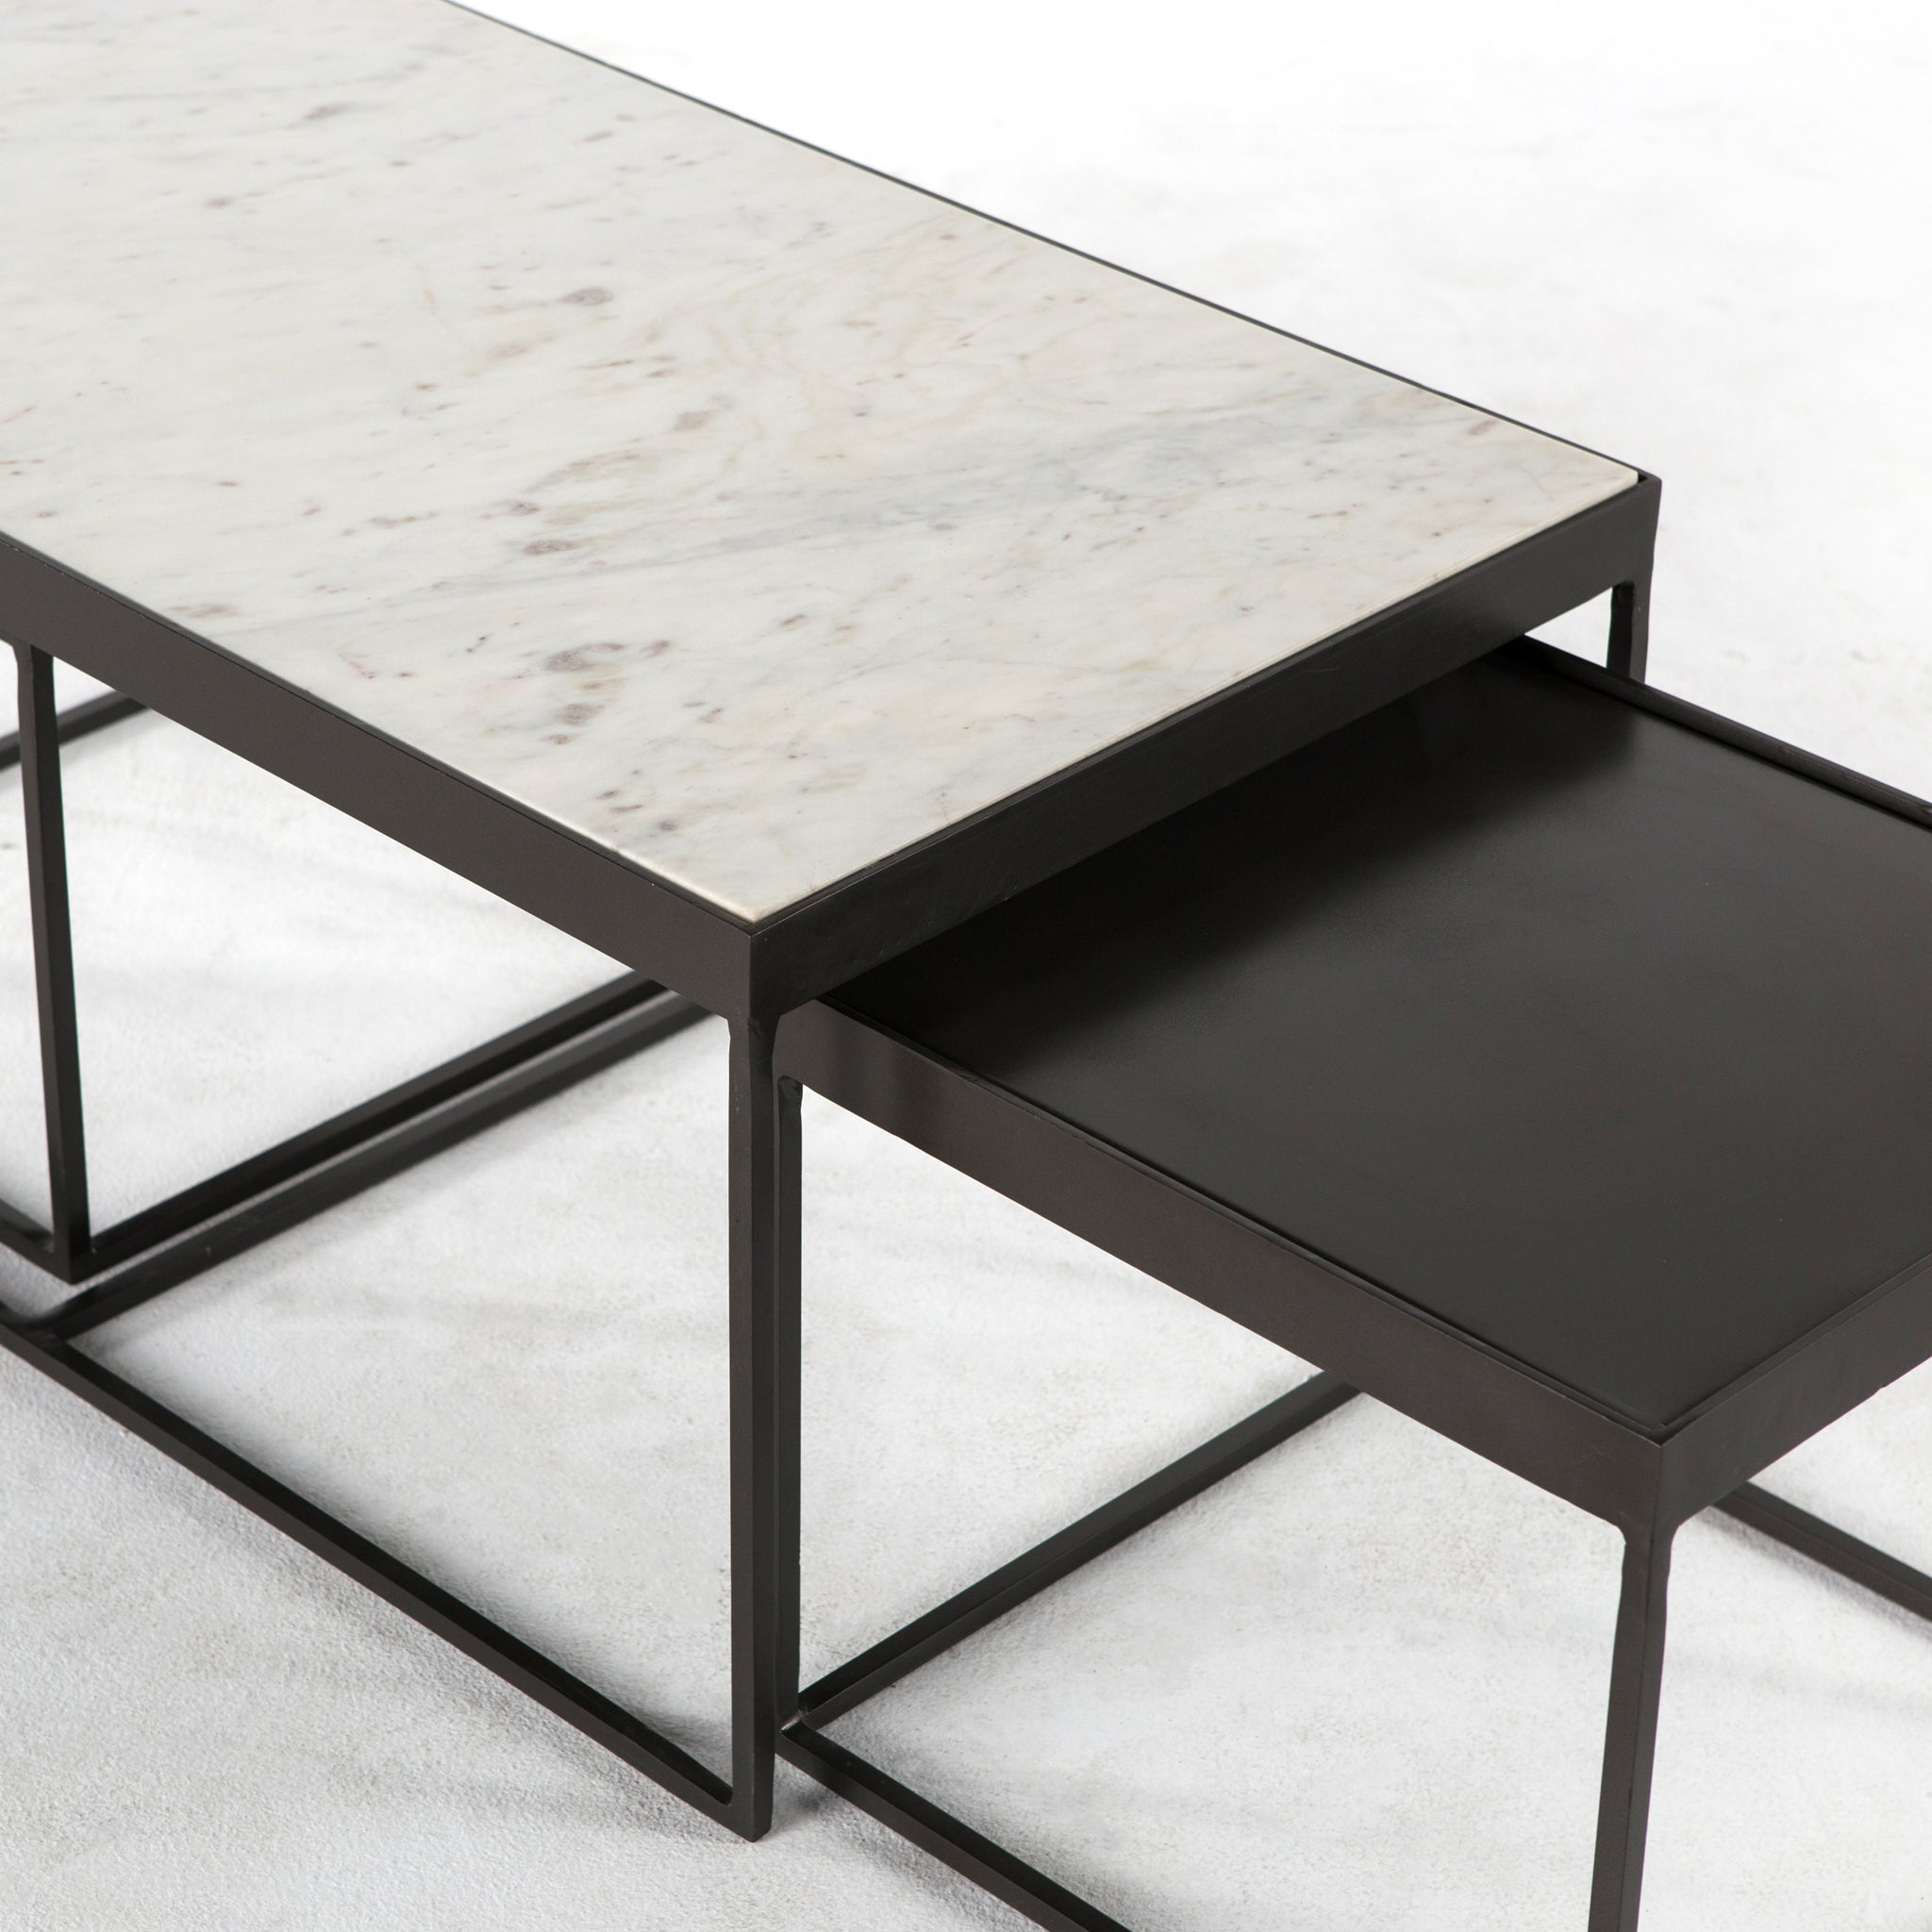 Evelyn nesting coffee table in gunmetal burke decor evelyn nesting coffee table in gunmetal watchthetrailerfo